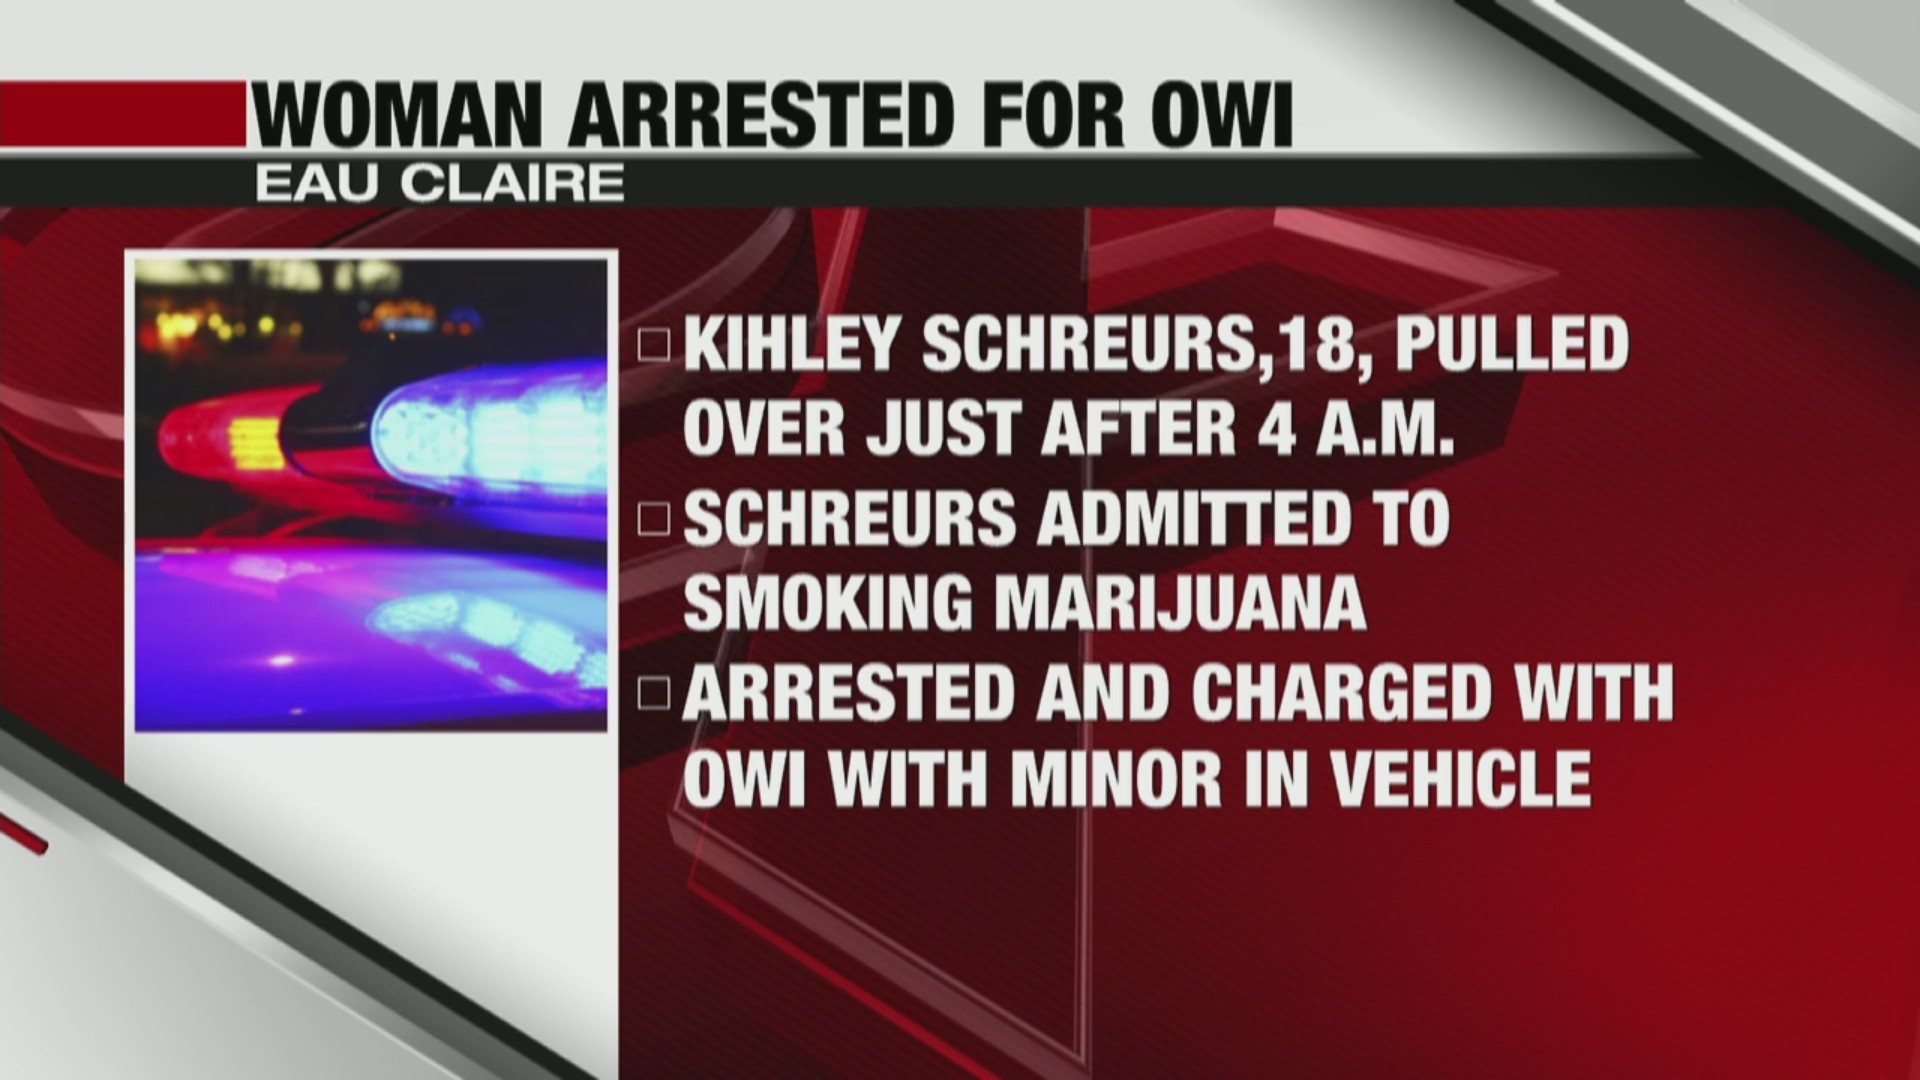 Multiple OWI charges with children in the vehicle